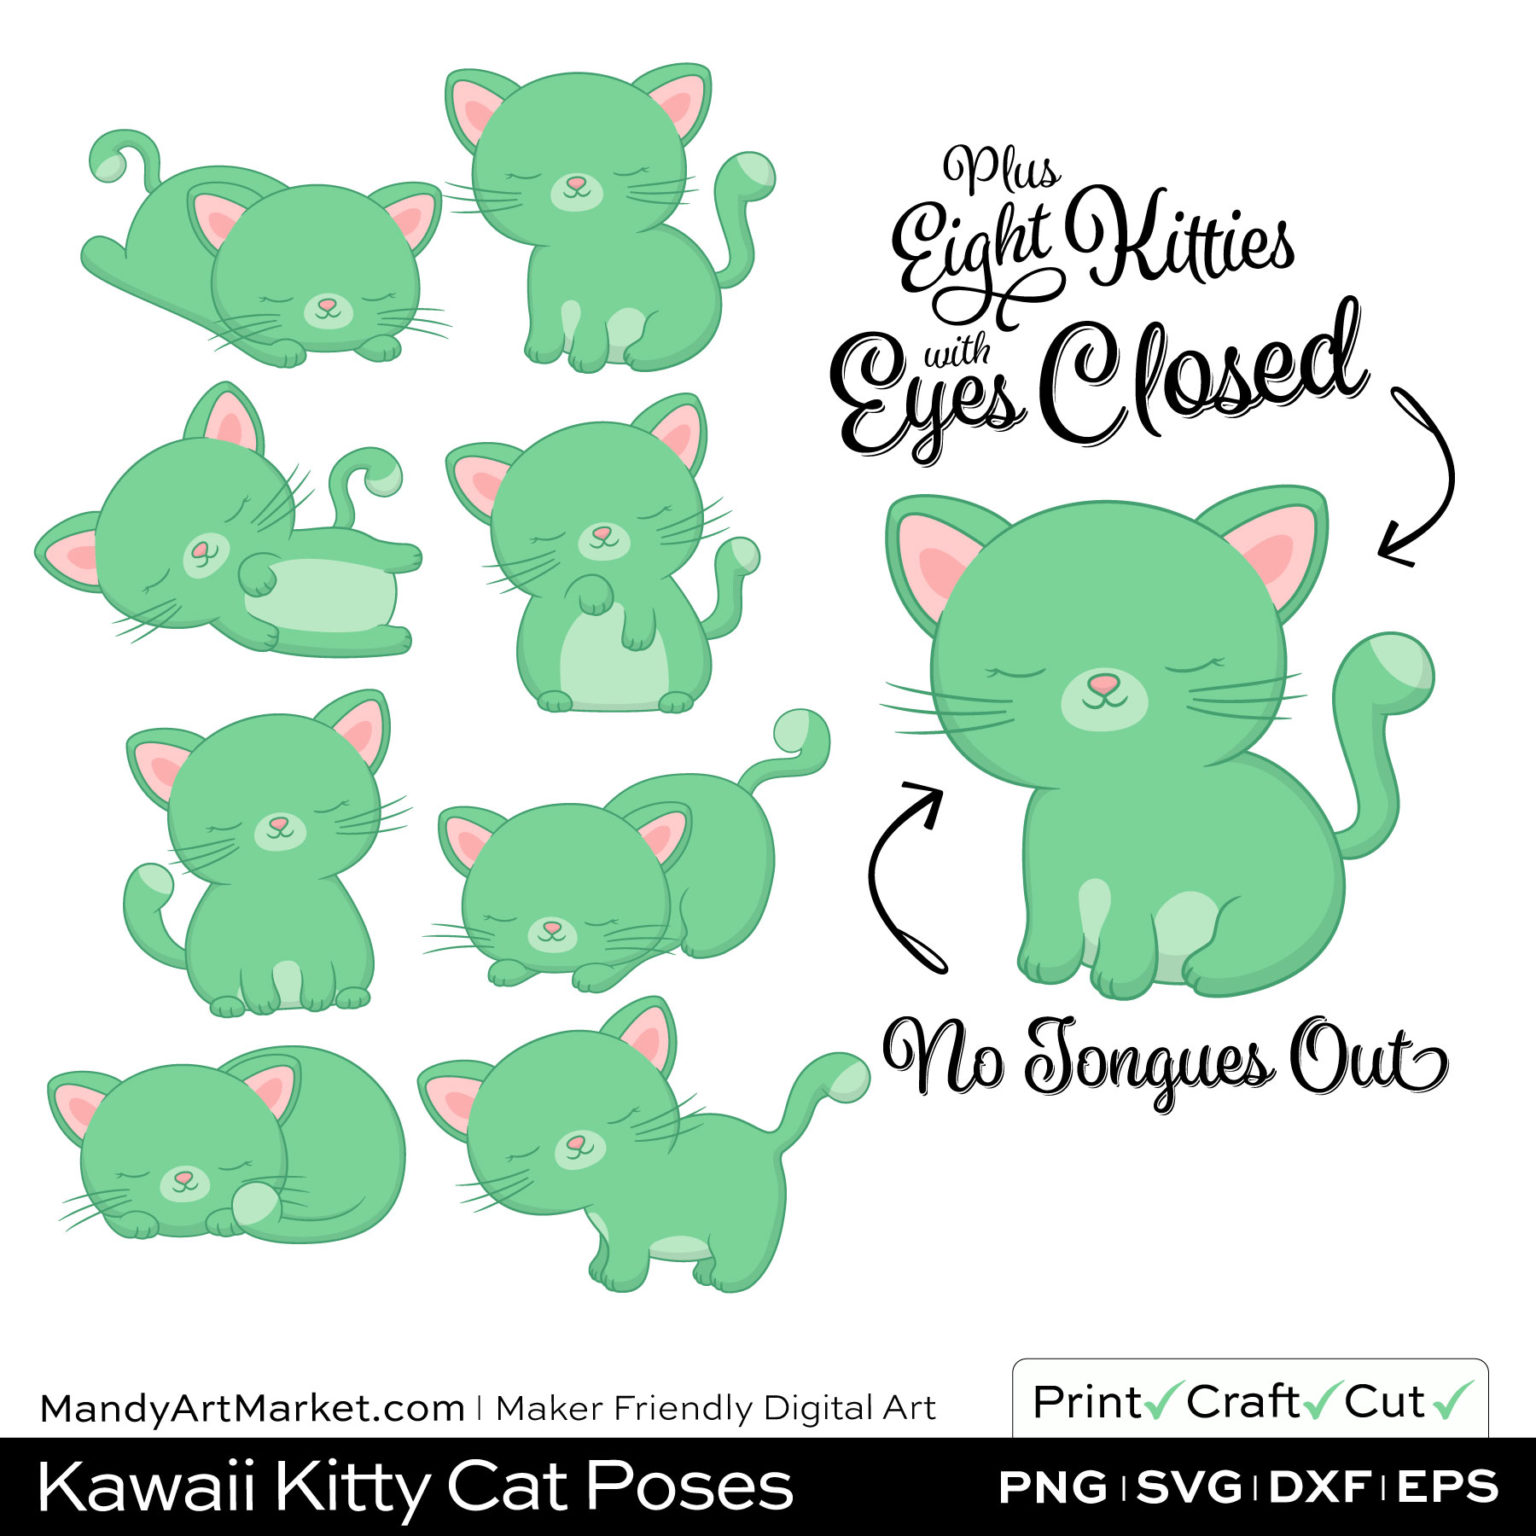 Light Fern Green Kawaii Kitty Cat Poses Clipart PNGs Included in Download